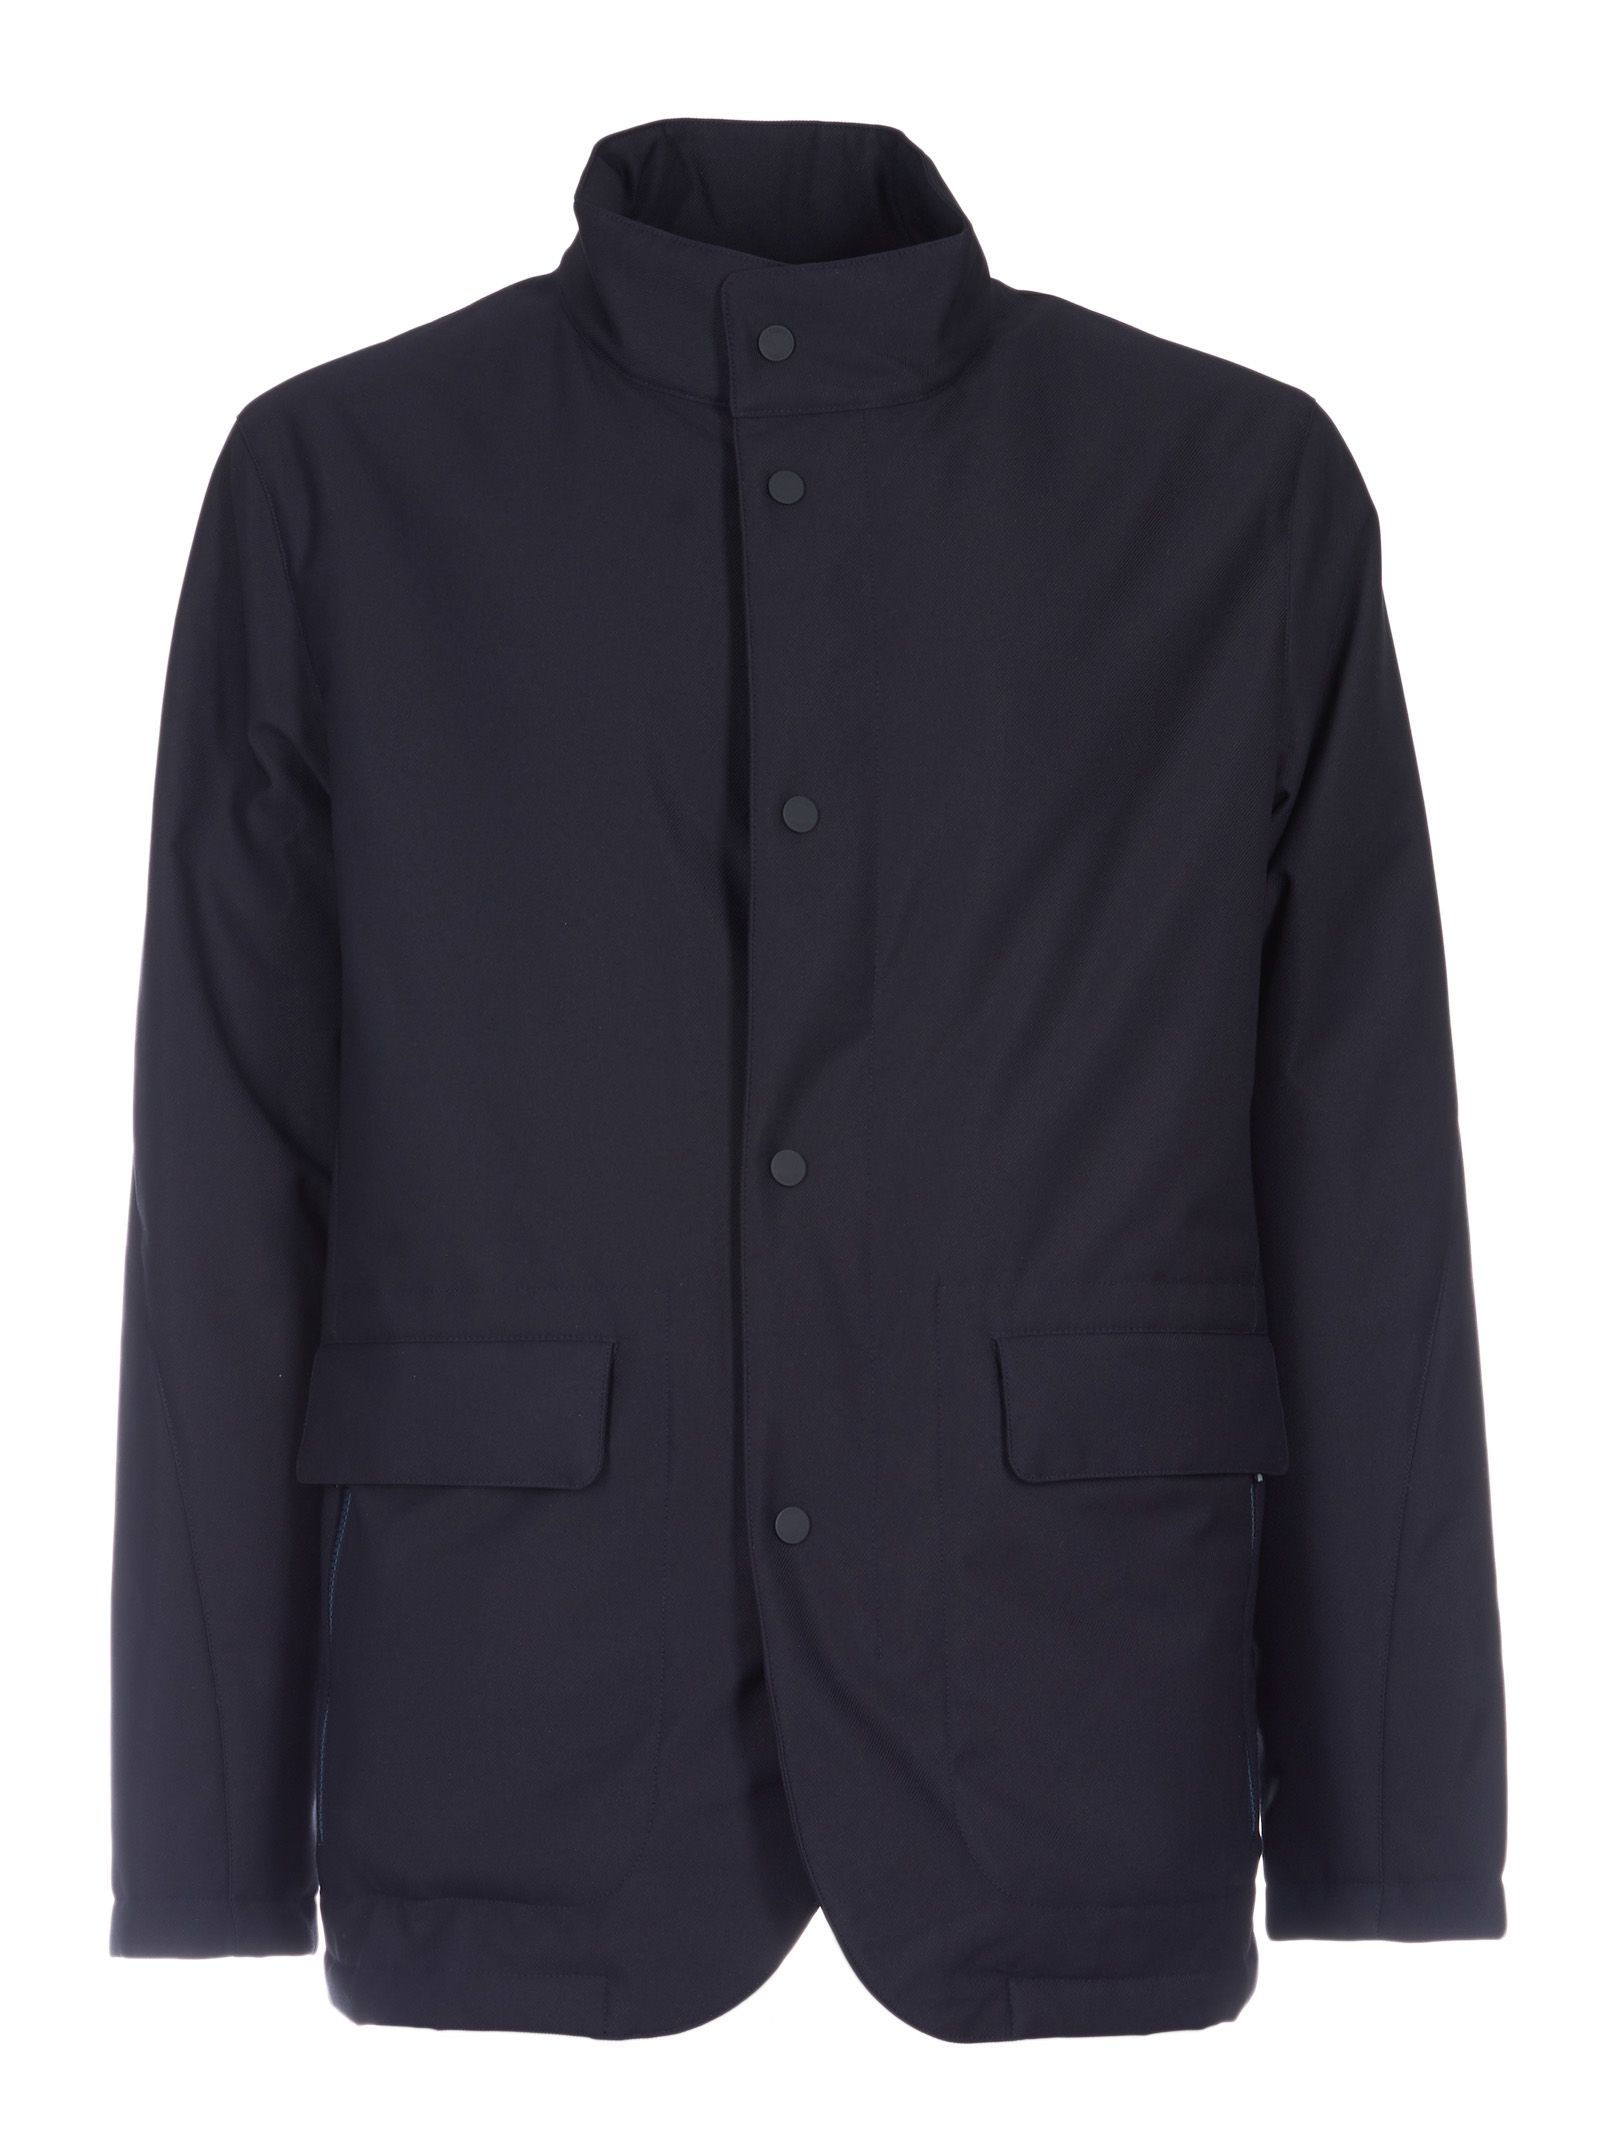 ermenegildo zegna - Zegna Icon Warmer Jacket